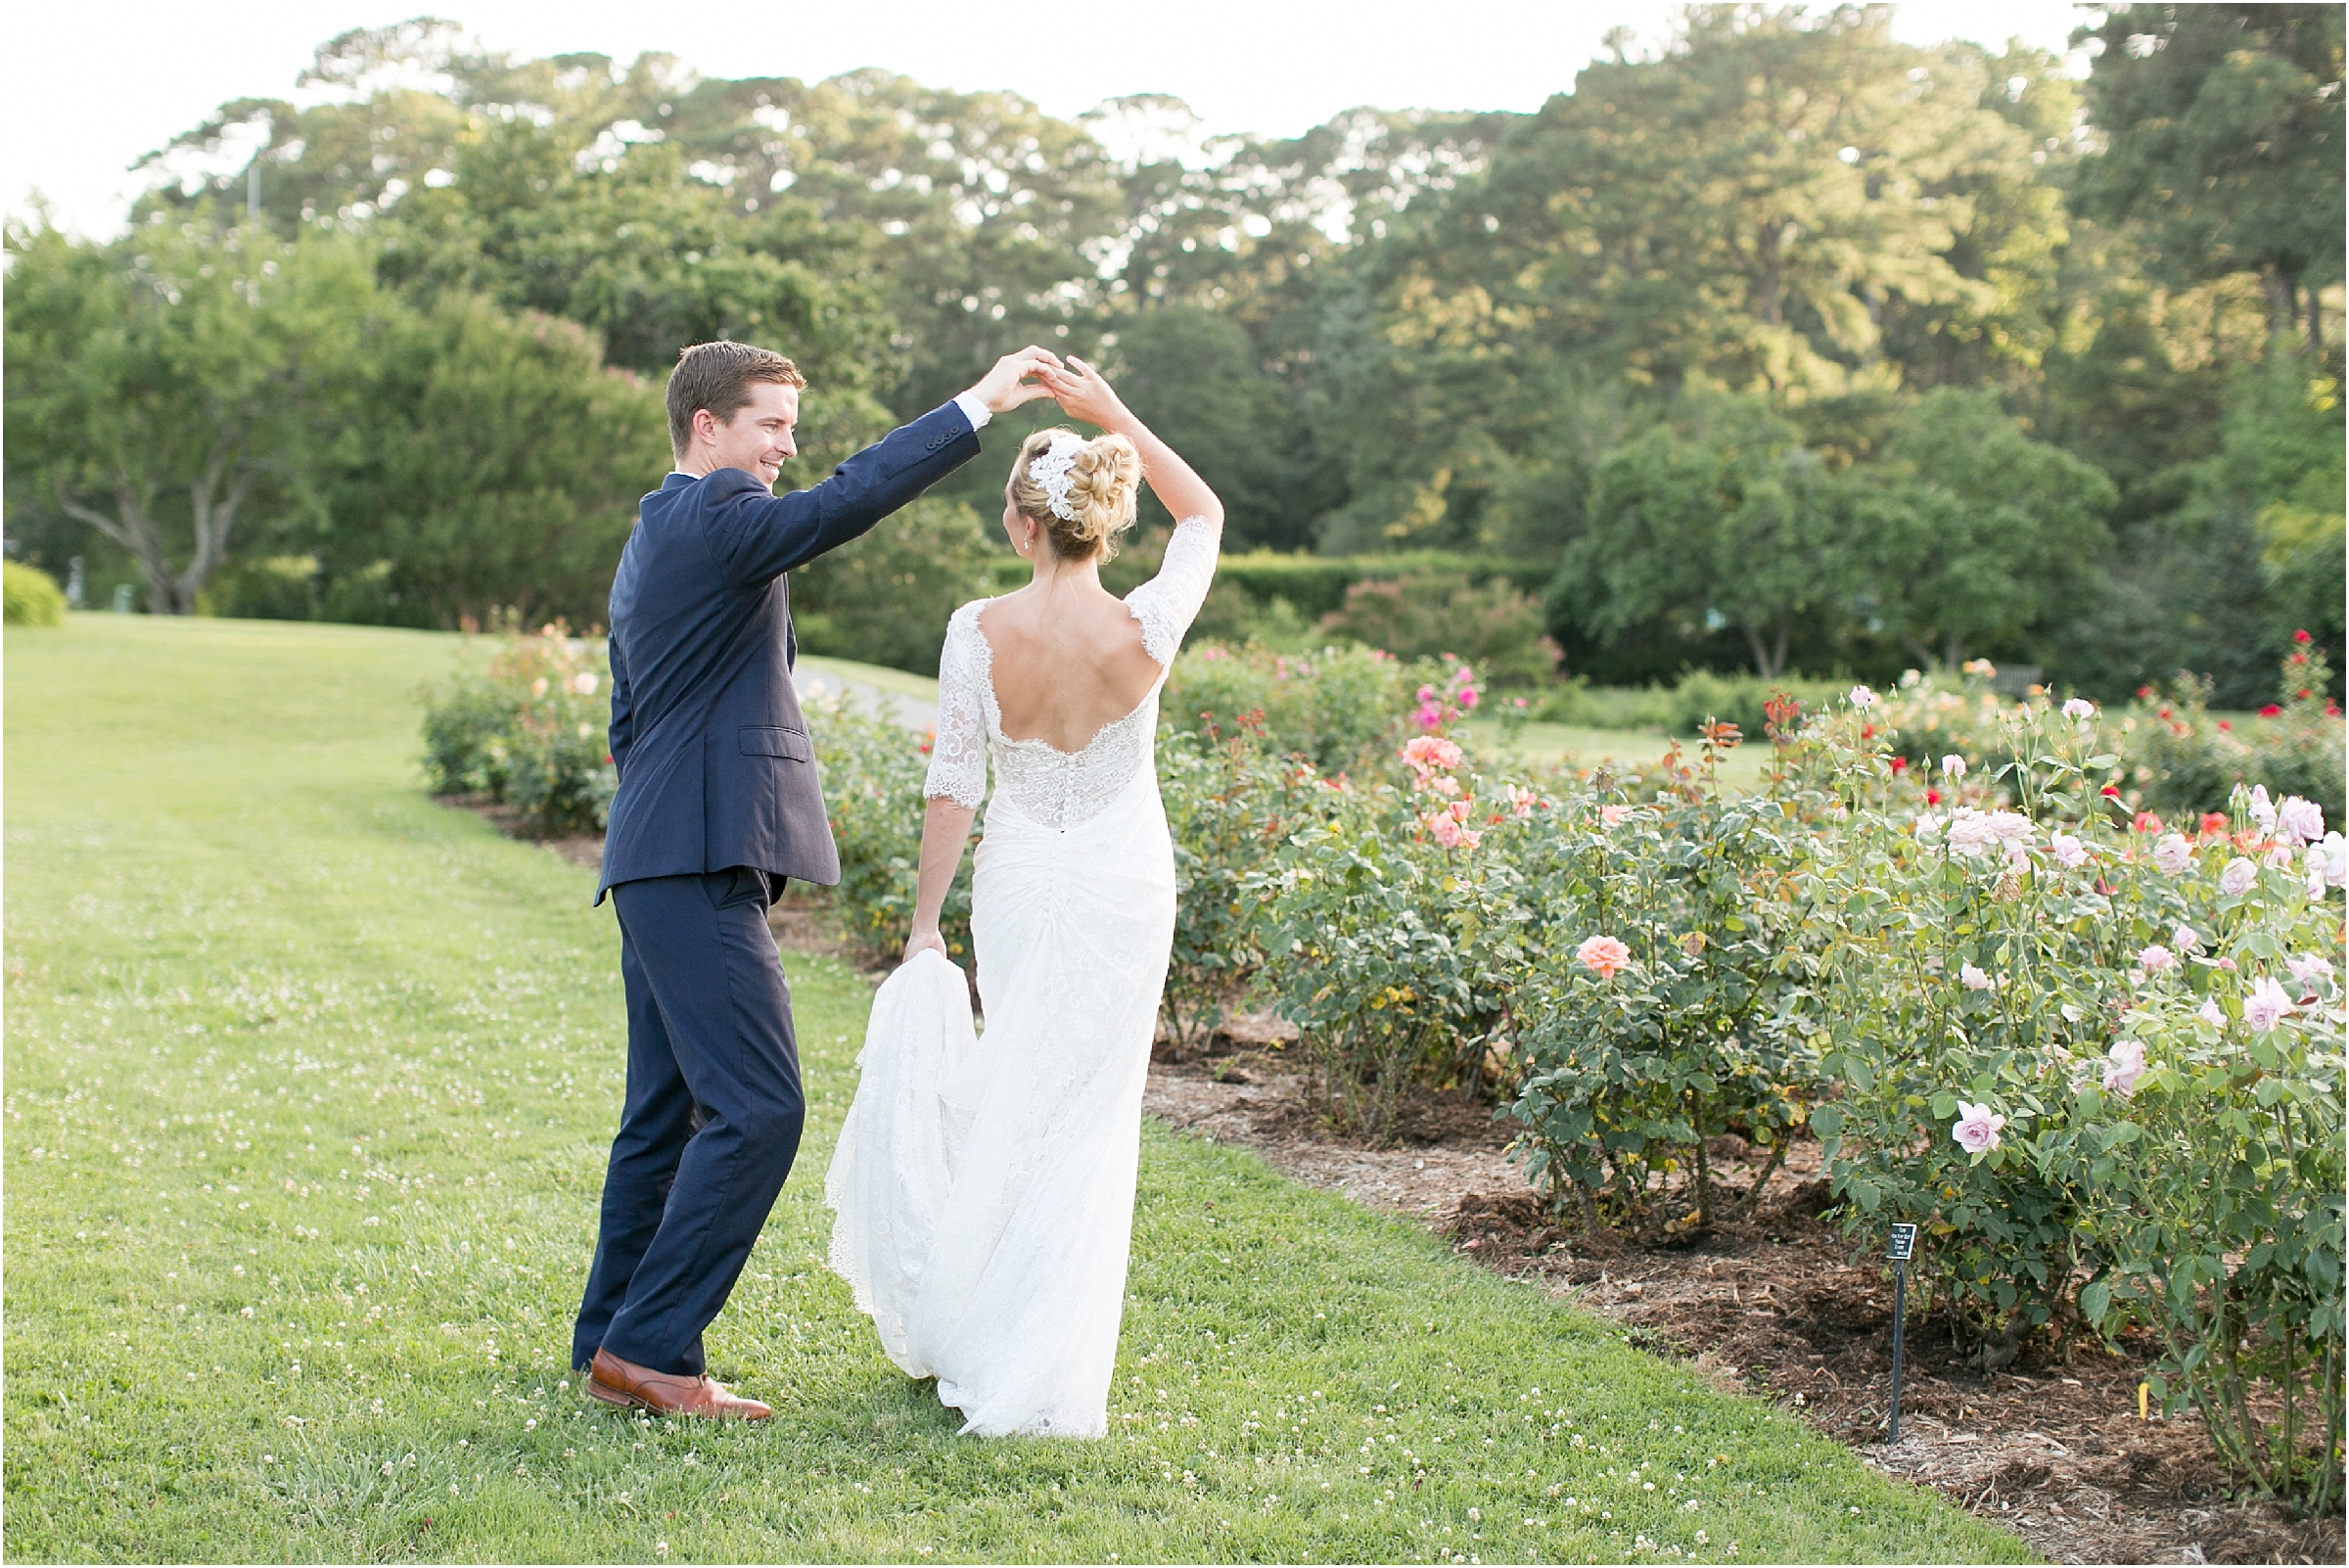 botanical gardens wedding photography norfolk virginia rose garden wedding jessica ryan photography